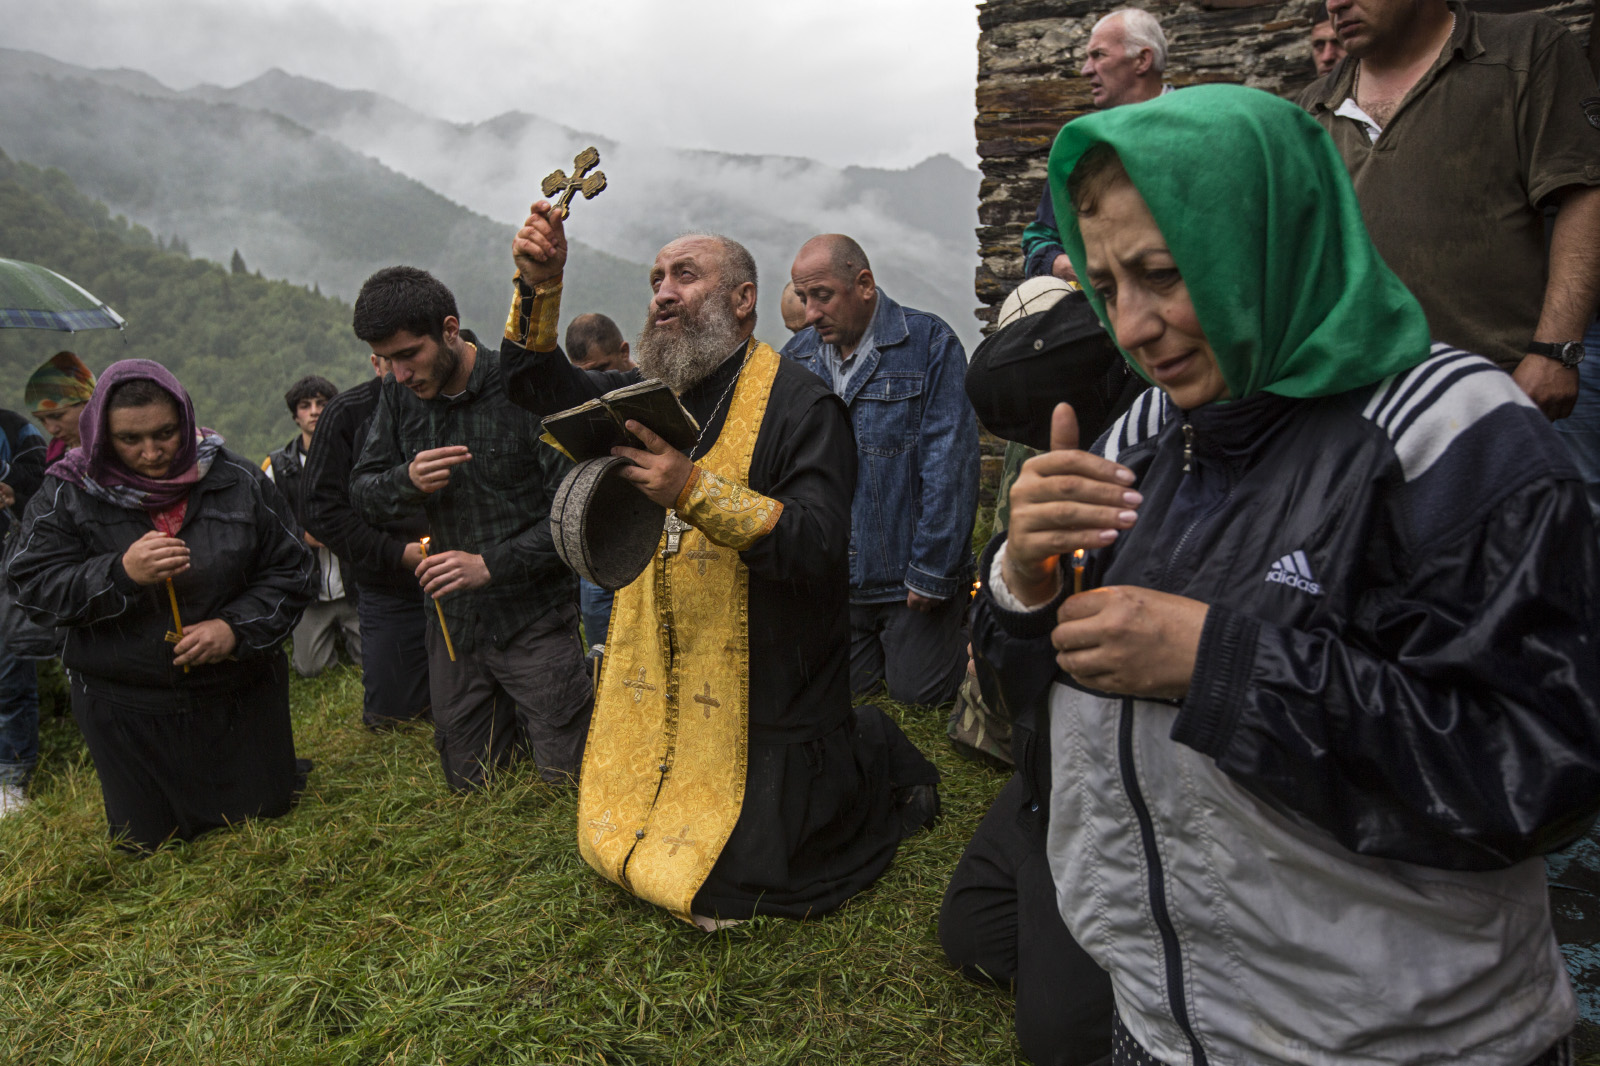 Mass at the monastery of St. Kvirike and St. Ivlita (Lagurka Church), at the Quiricoba Festival, Kala